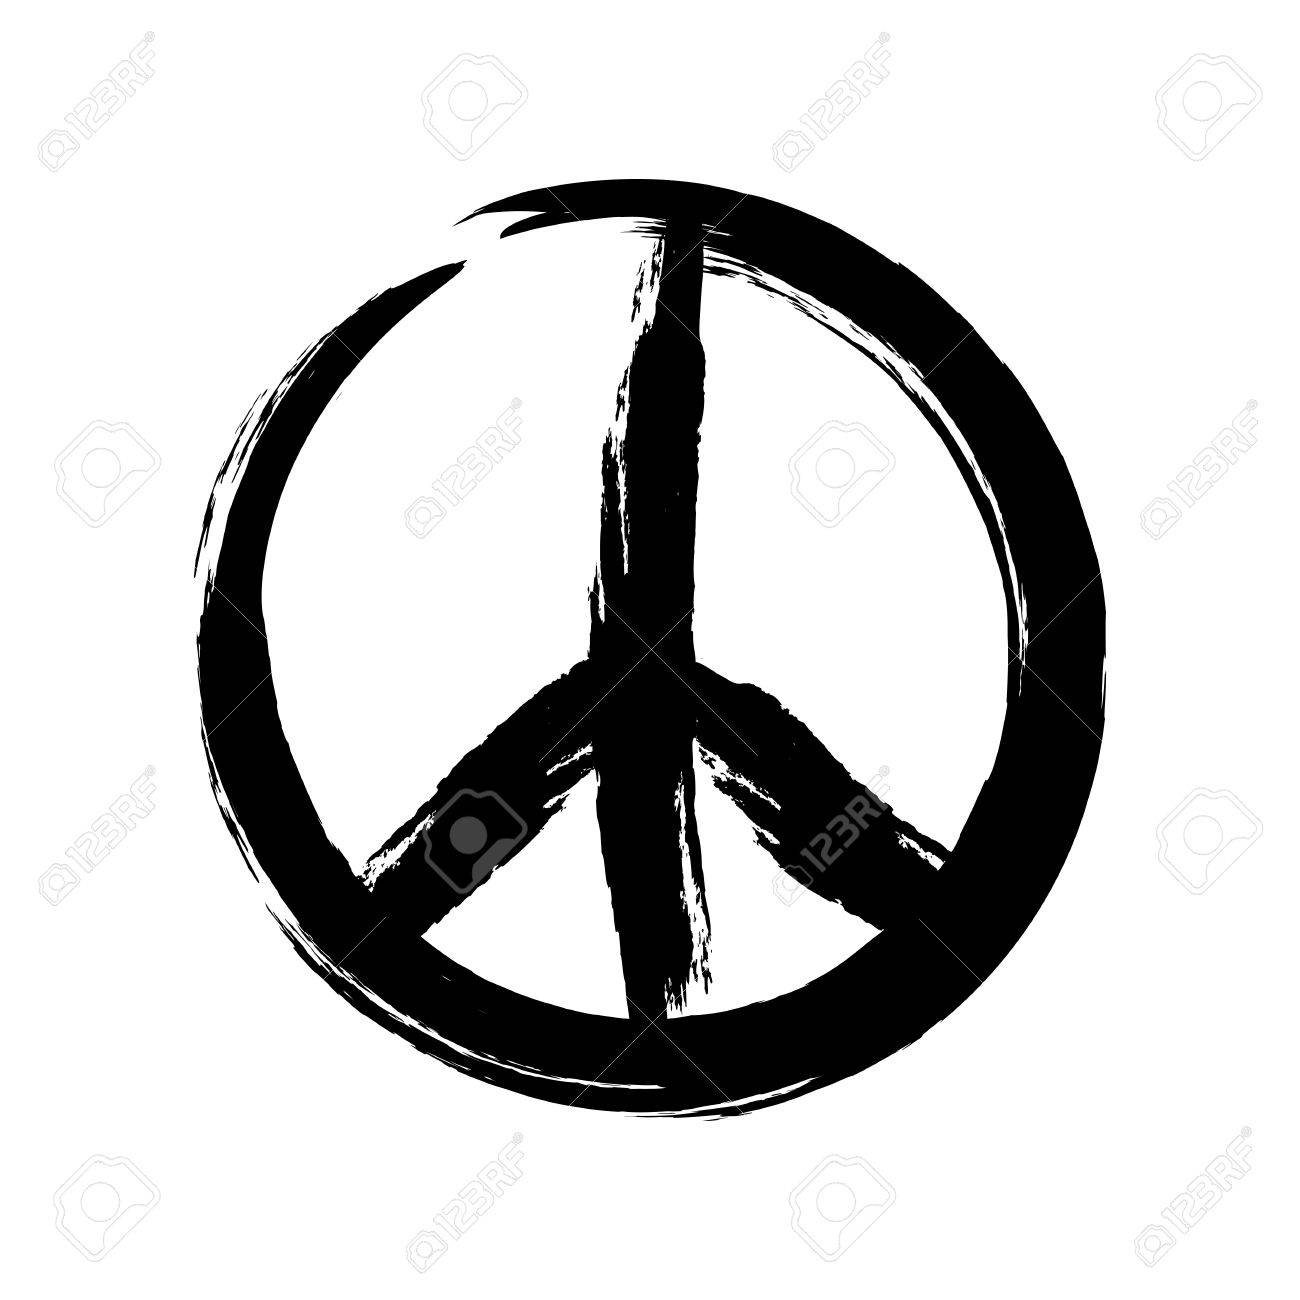 sign pacifist peace symbol drawn by hand with a brush black rh 123rf com peace sign vector free peace sign vector file